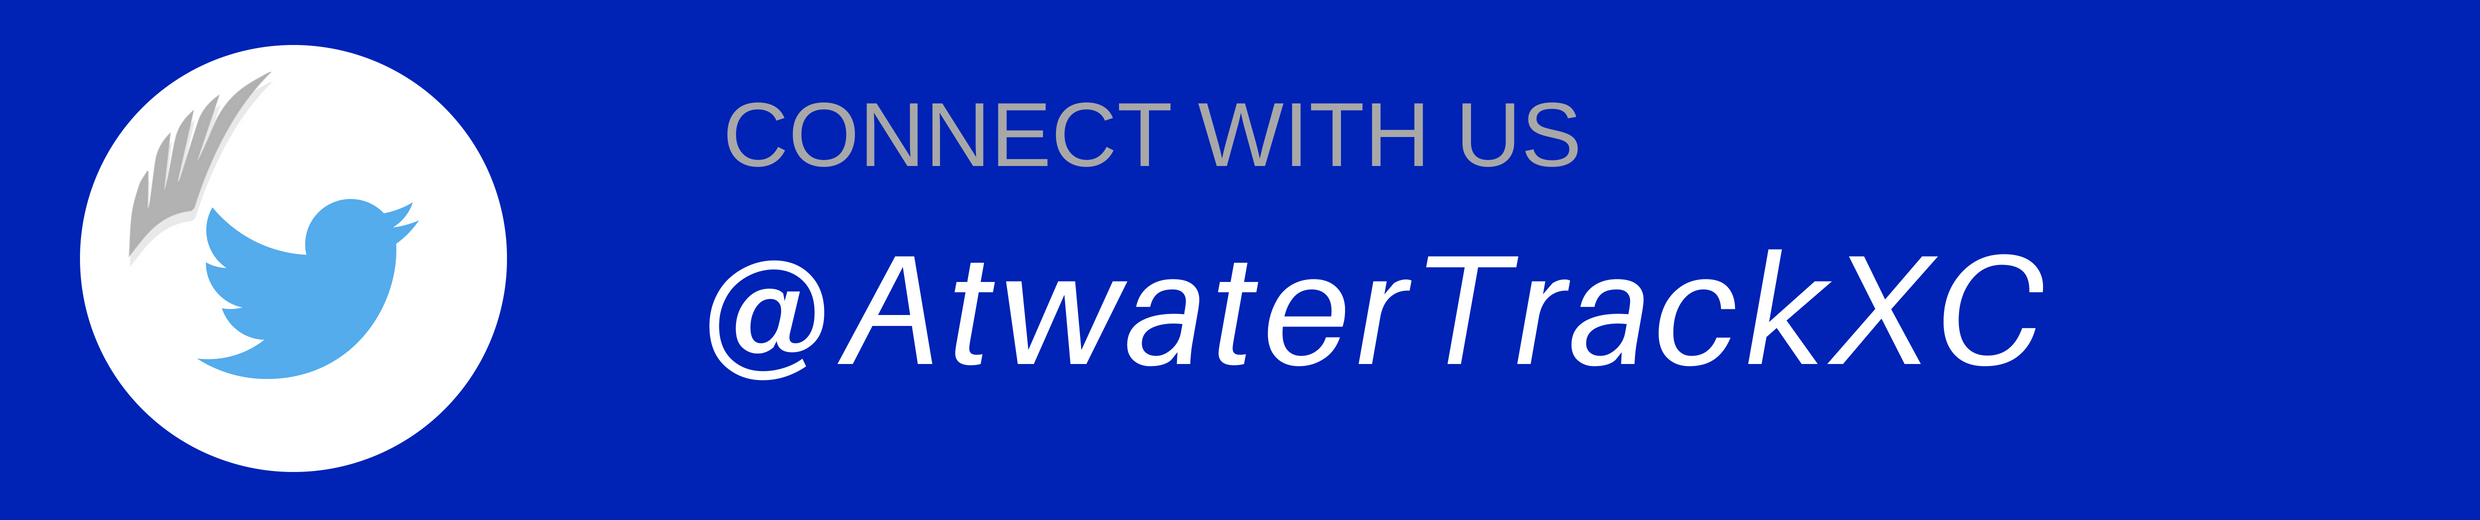 Connect with US @AtwaterTrackerXC